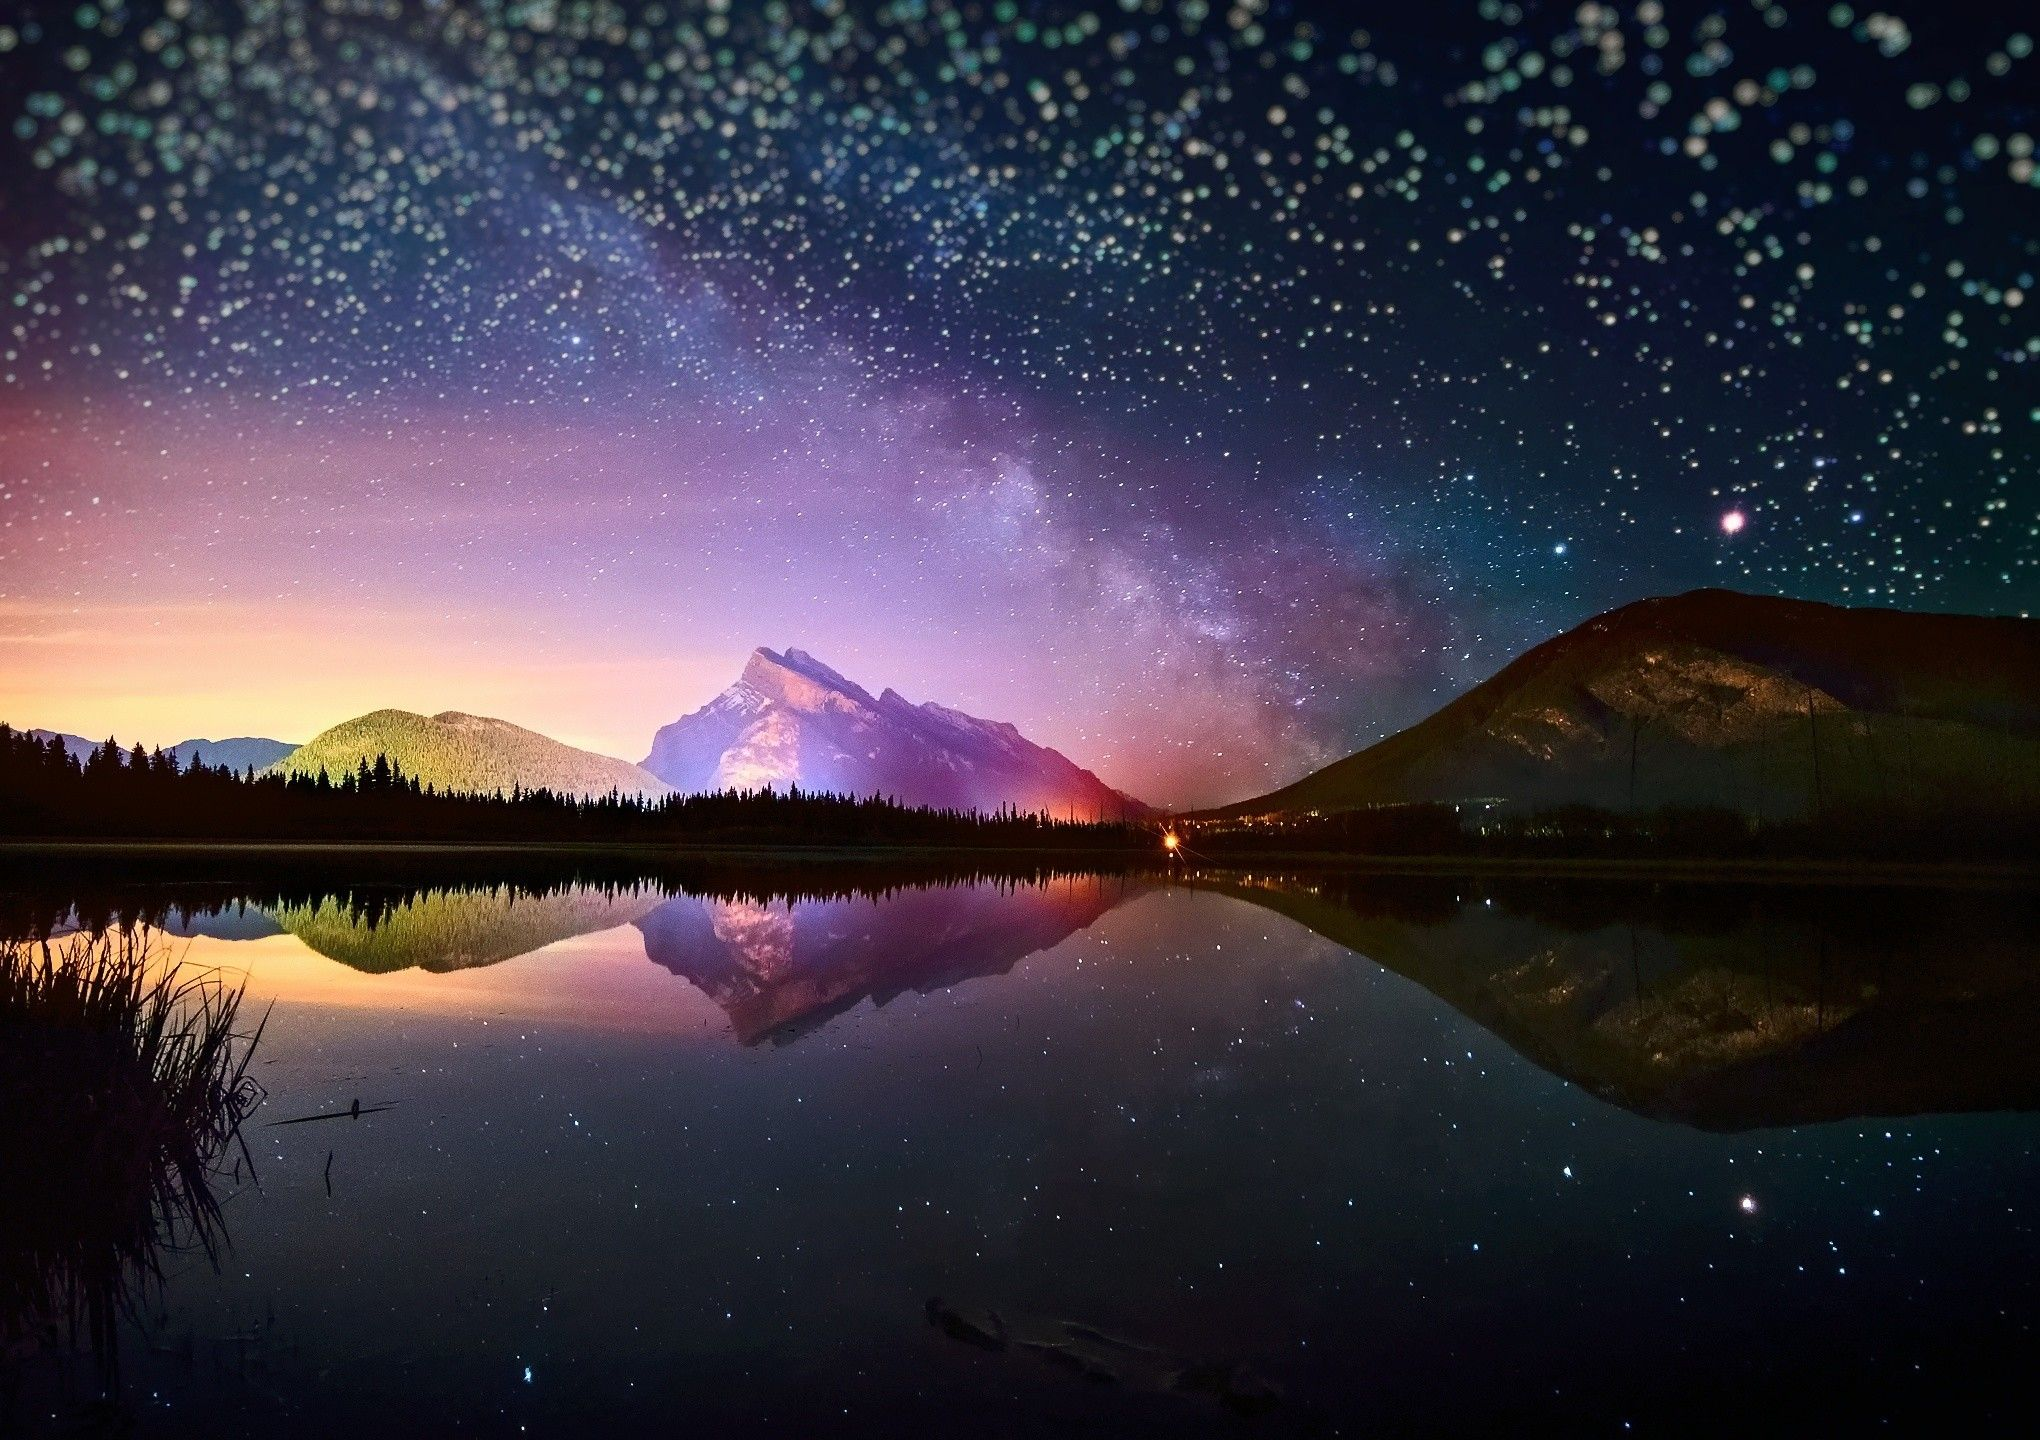 Starry Night Sky Google Search Night Sky Wallpaper Starry Night Sky Wallpaper Starry Night Sky